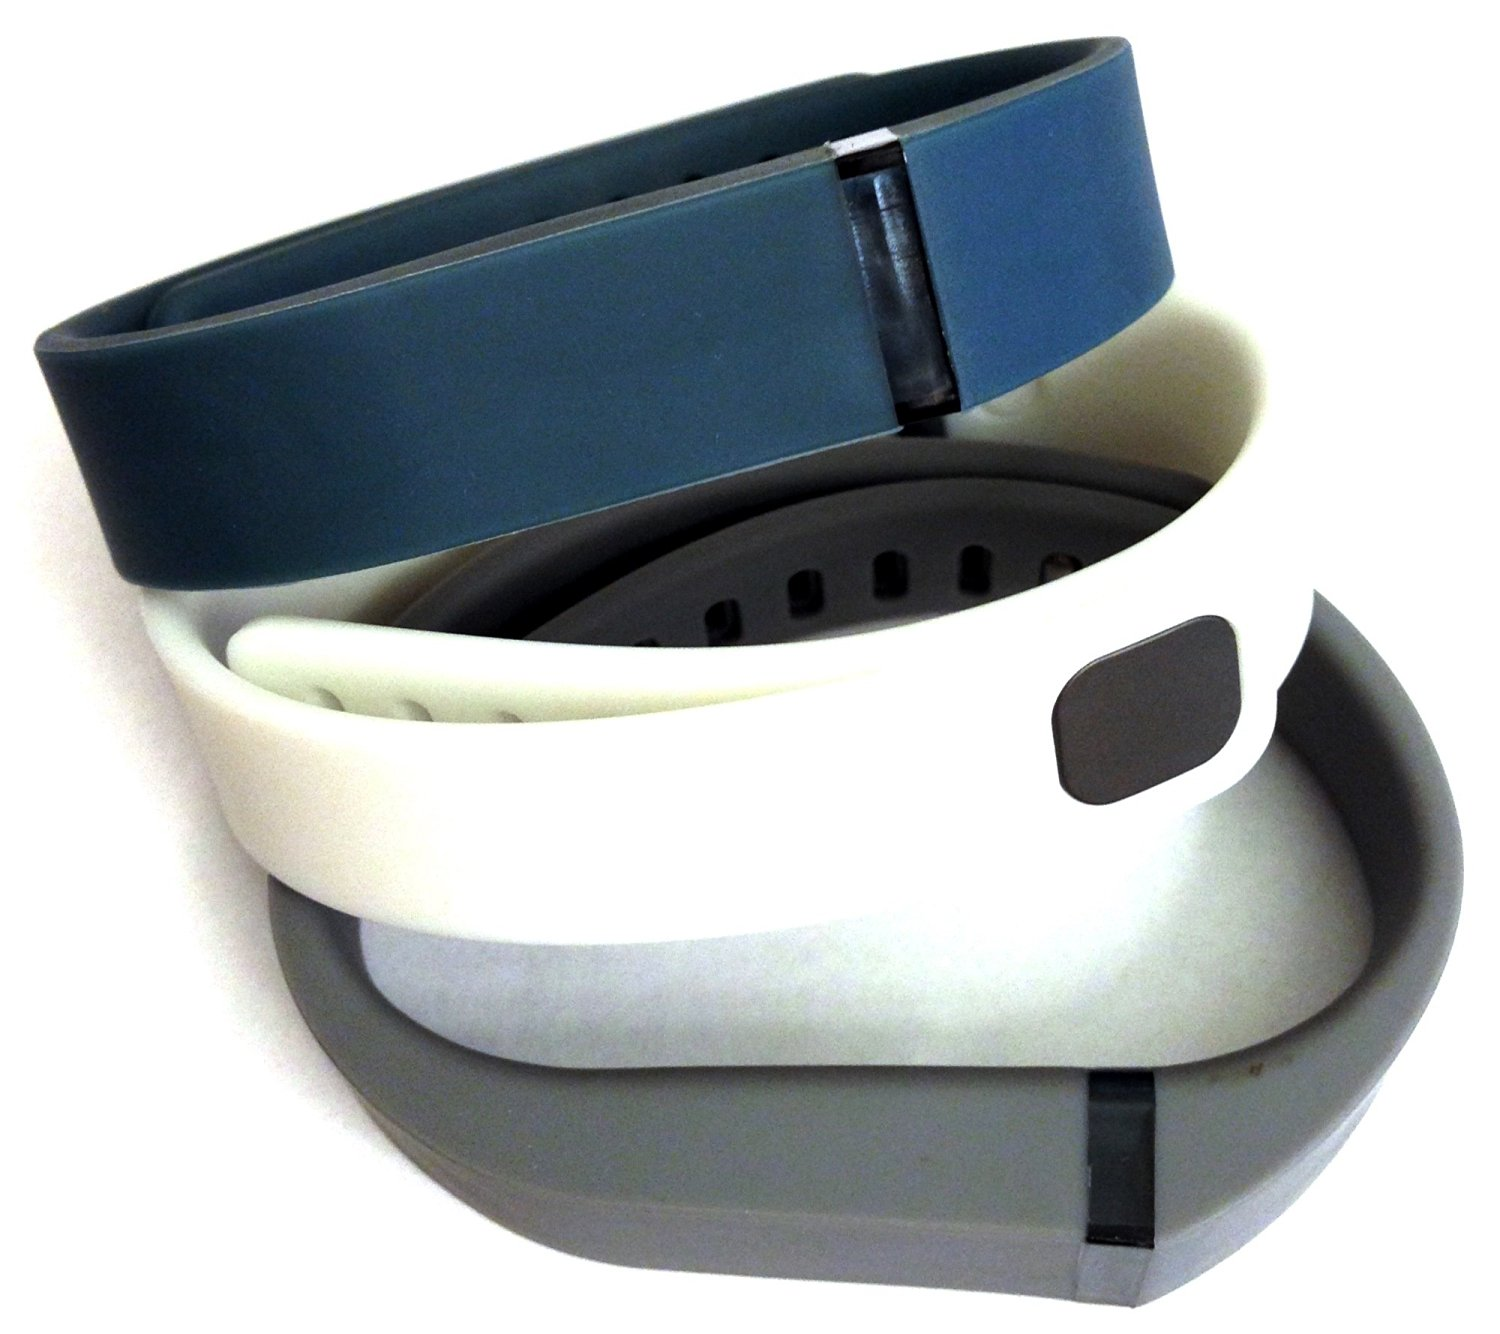 Set 3 Colors Large L 1pc Grey 1pc Navy (Blue) 1pc White Replacement Bands With Clasp for Fitbit FLEX Only /No tracker/ Wireless Activity Bracelet Sport Wristband Fit Bit Flex Bracelet Sport Arm Band Armband